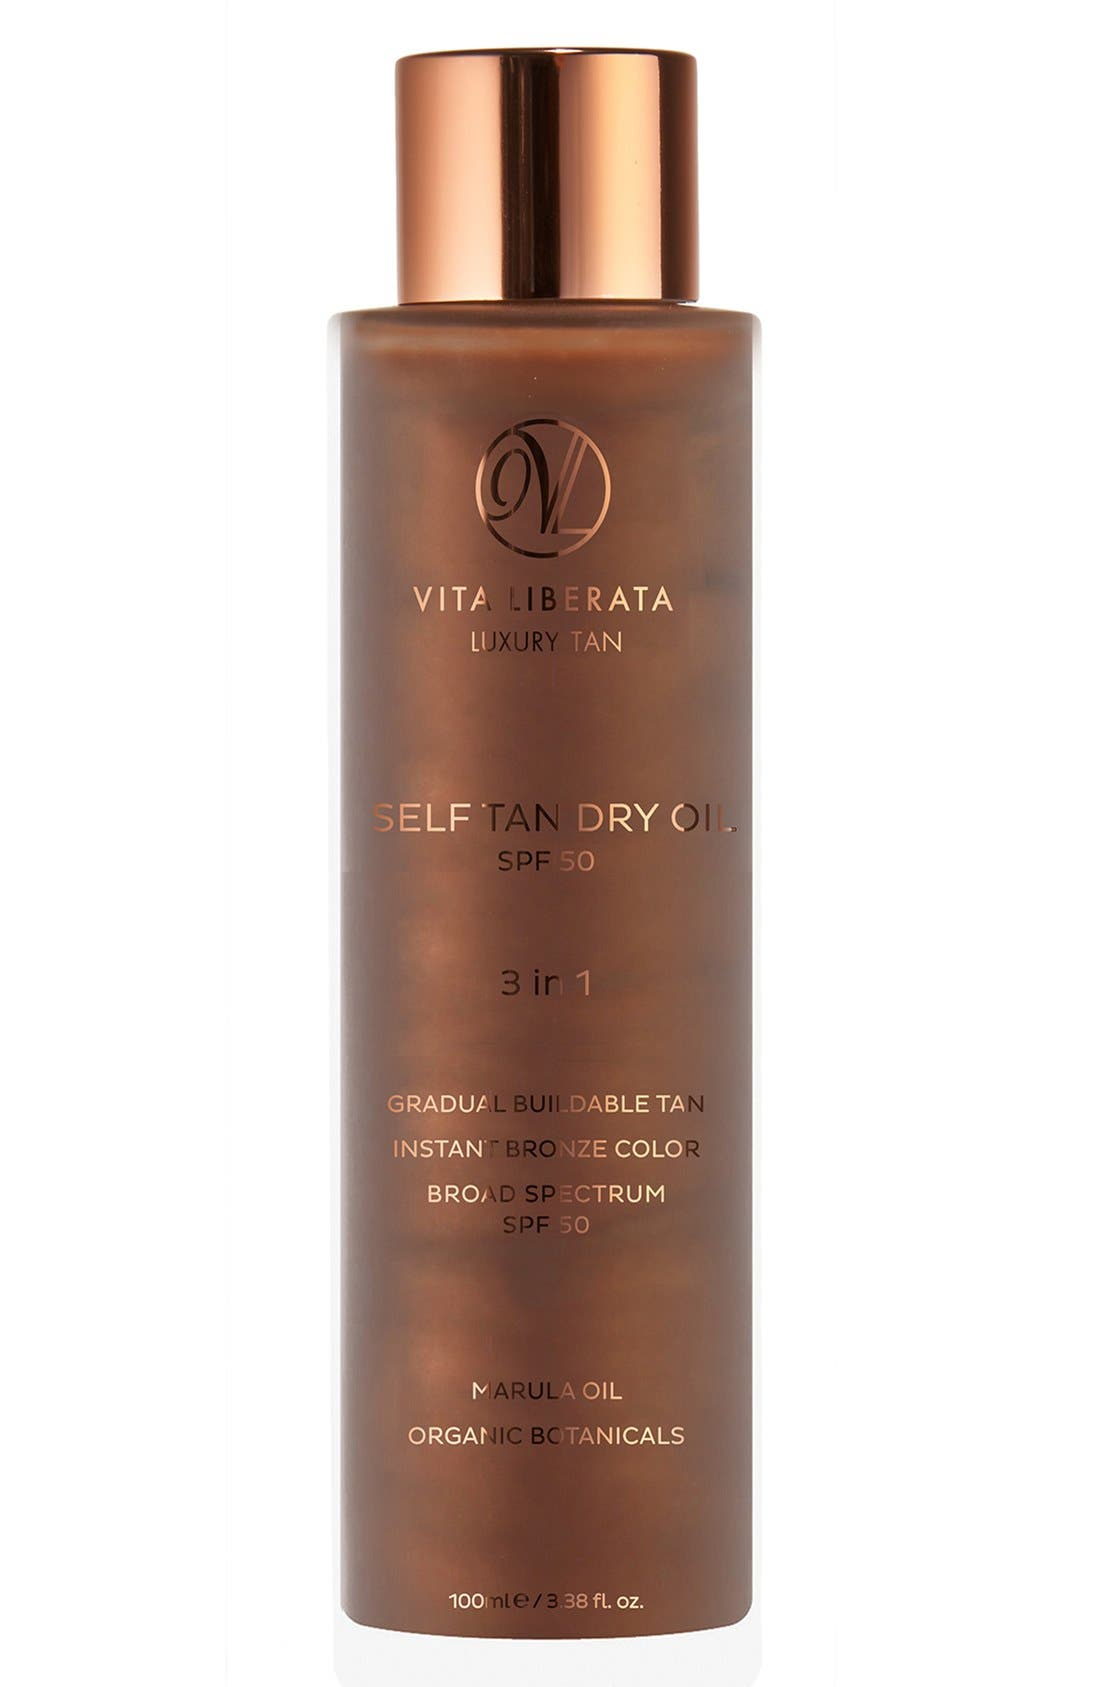 VITA LIBERATA Self Tan Dry Oil SPF 50